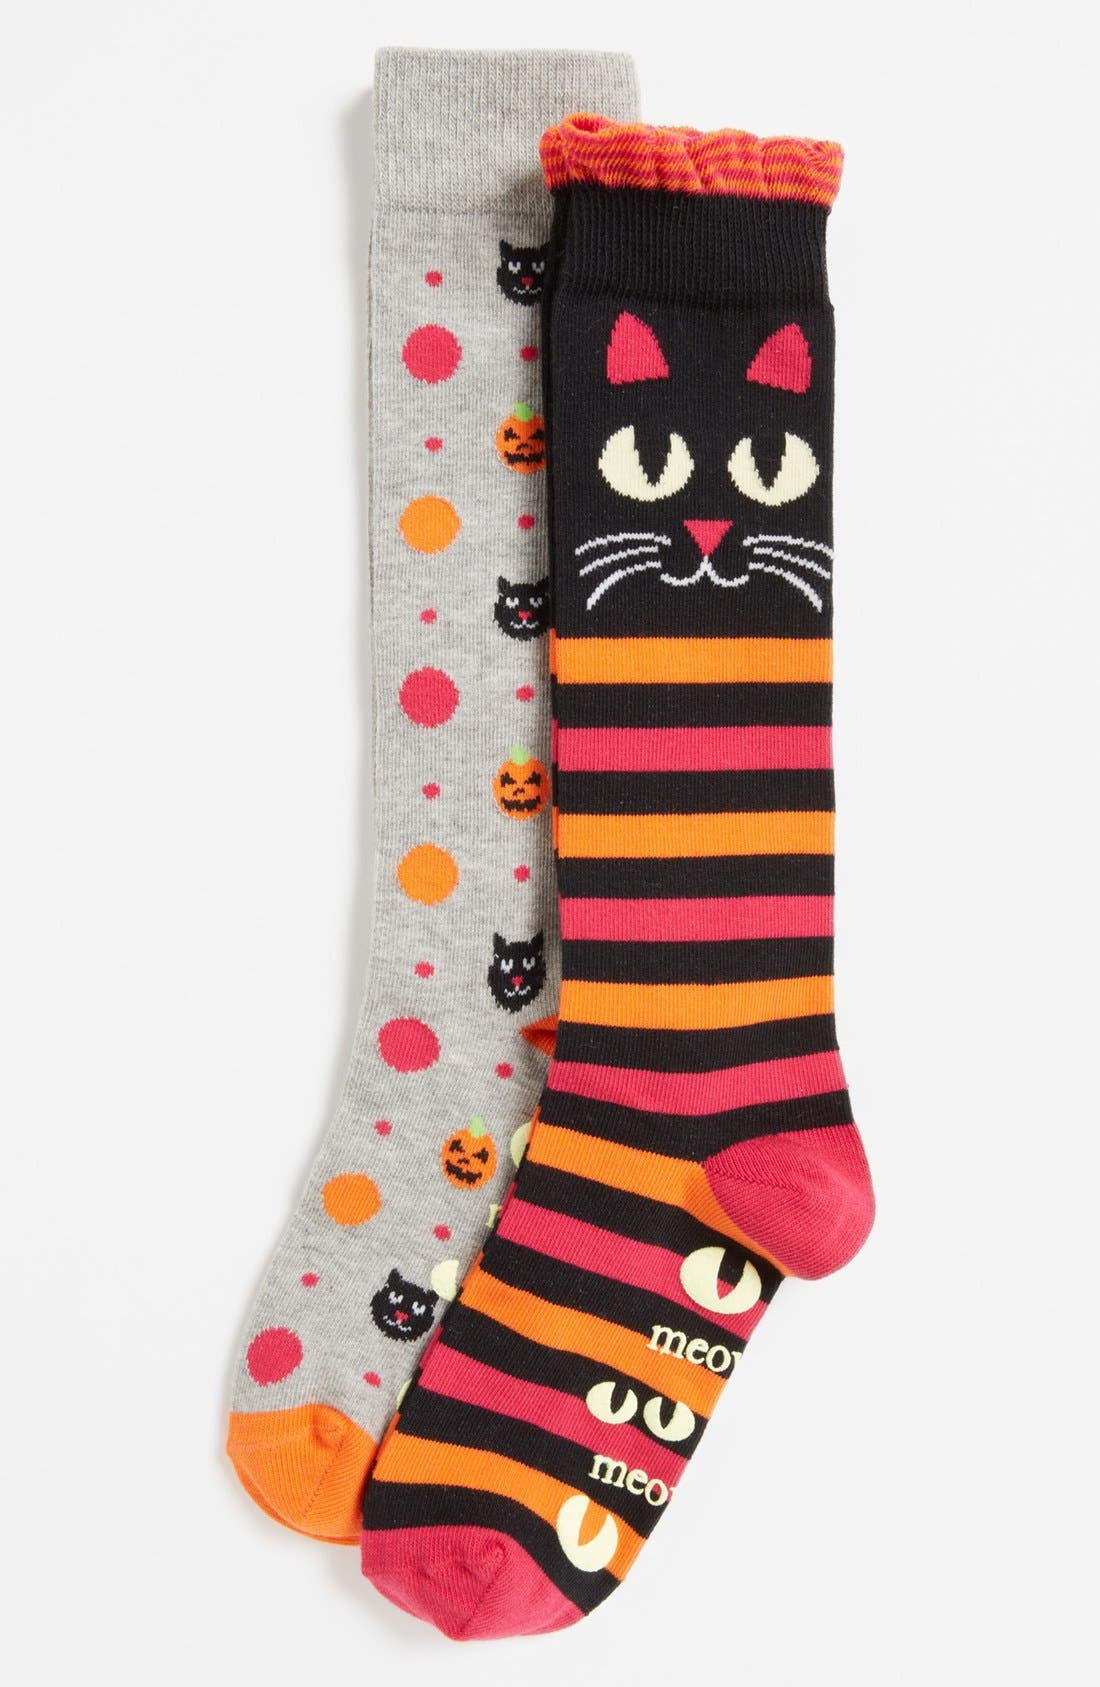 Alternate Image 1 Selected - Nordstrom 'Meowlloween' Socks (2-Pack) (Toddler Girls, Little Girls & Big Girls)